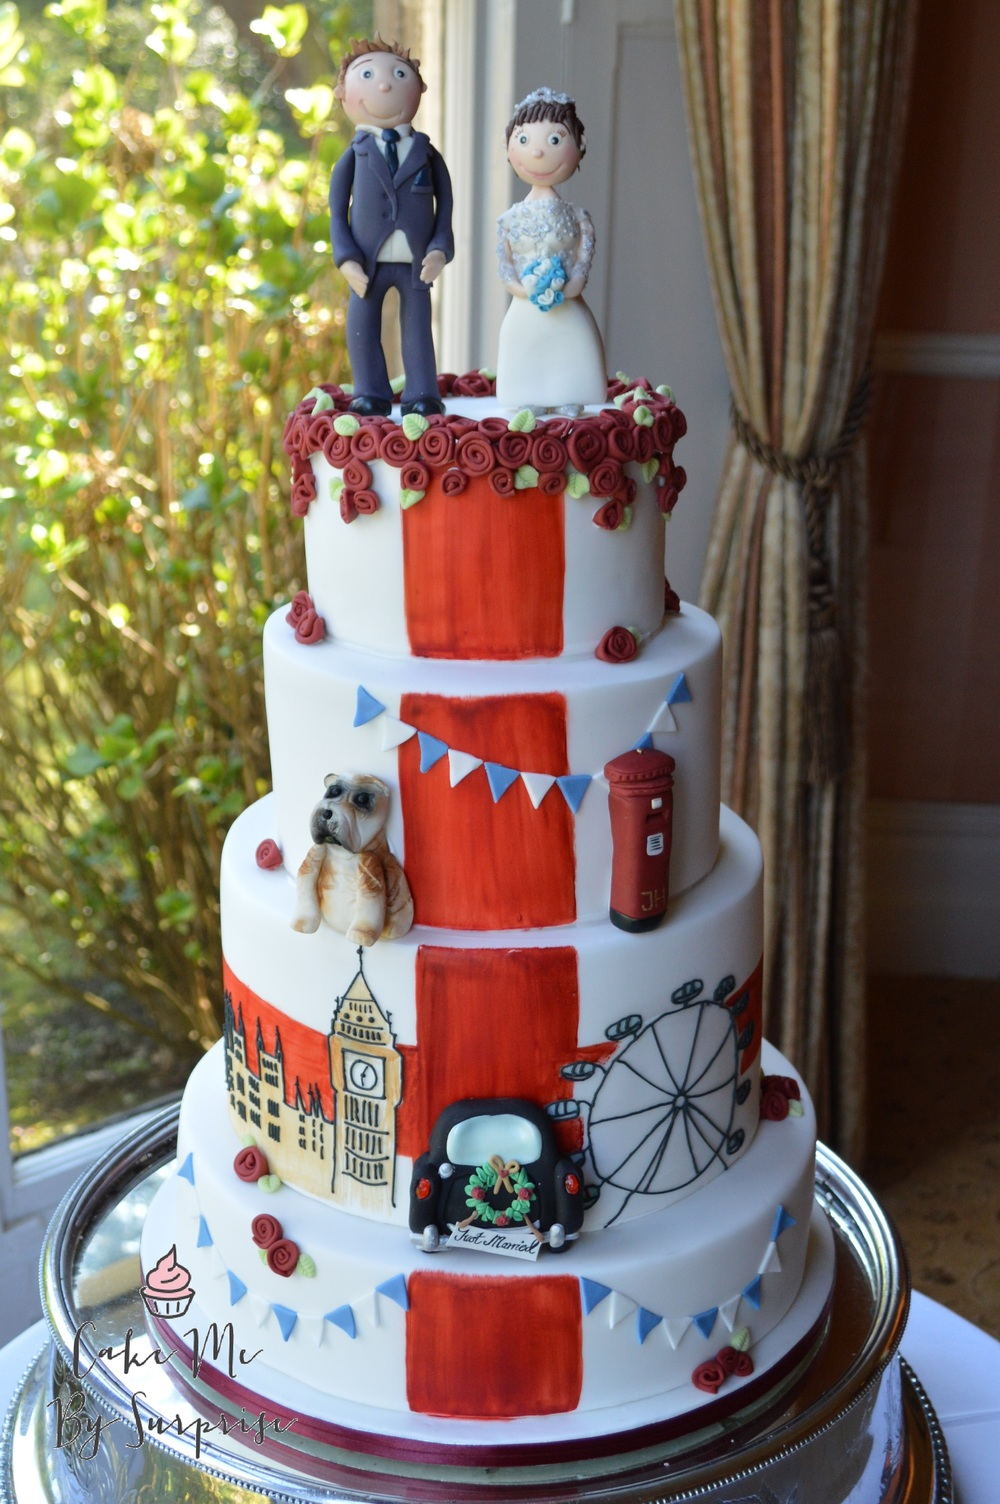 This England themed wedding cake was completed with top London attractions, such as the London eye and Big Ben. We included a British bull dog, postbox, rolled red roses and bunting.  The St Georges Flag runs down the entire cake, and to finish the design, we added a beautiful sugar crafted London taxi cab, with a swinging 'Just Married' sign and floral wreath.